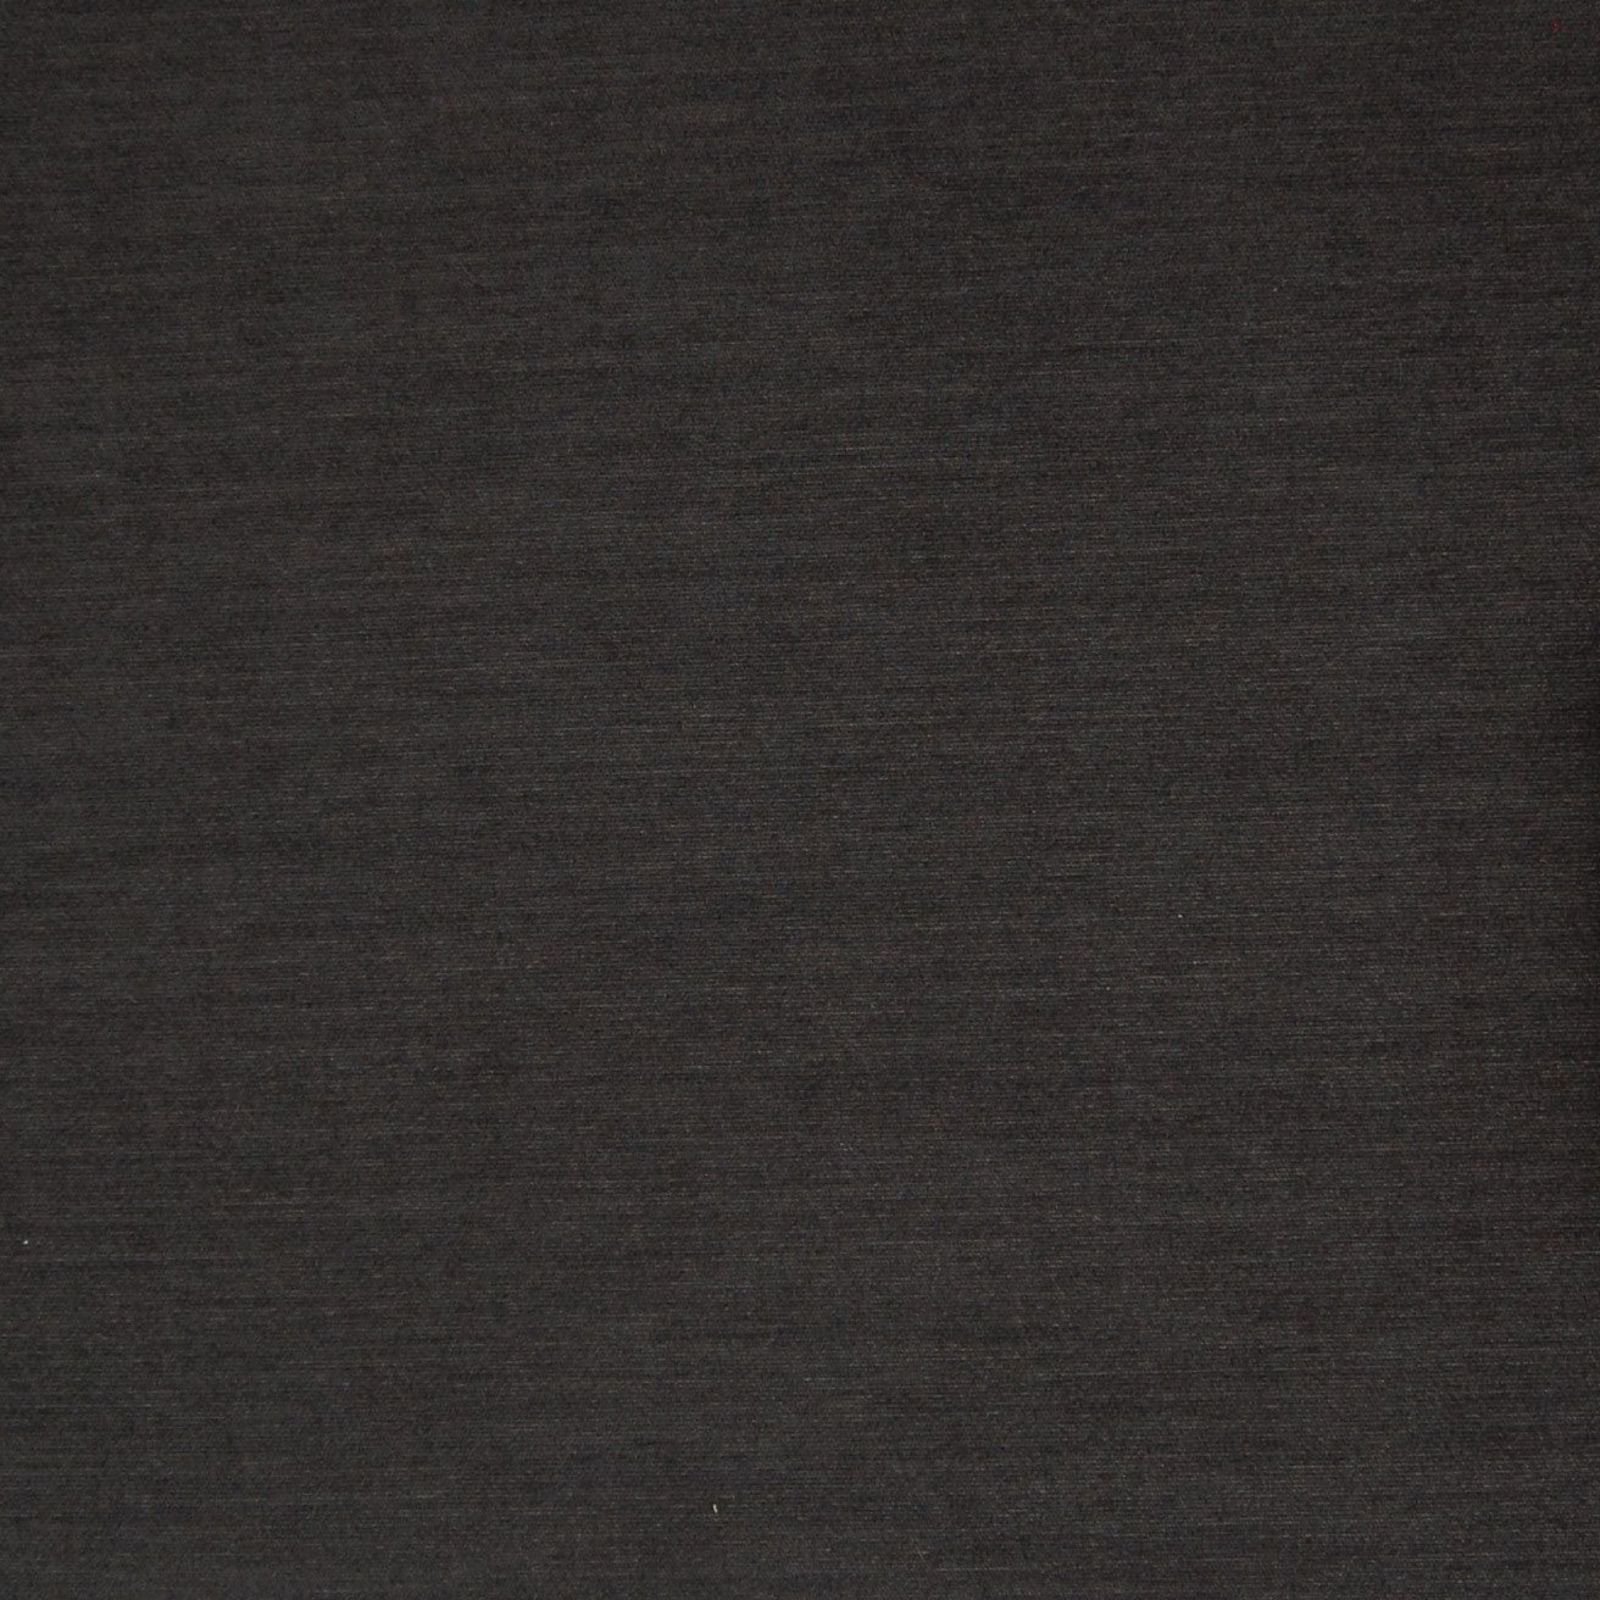 Charcoal Gray And Black Solid Velvet Upholstery Fabric